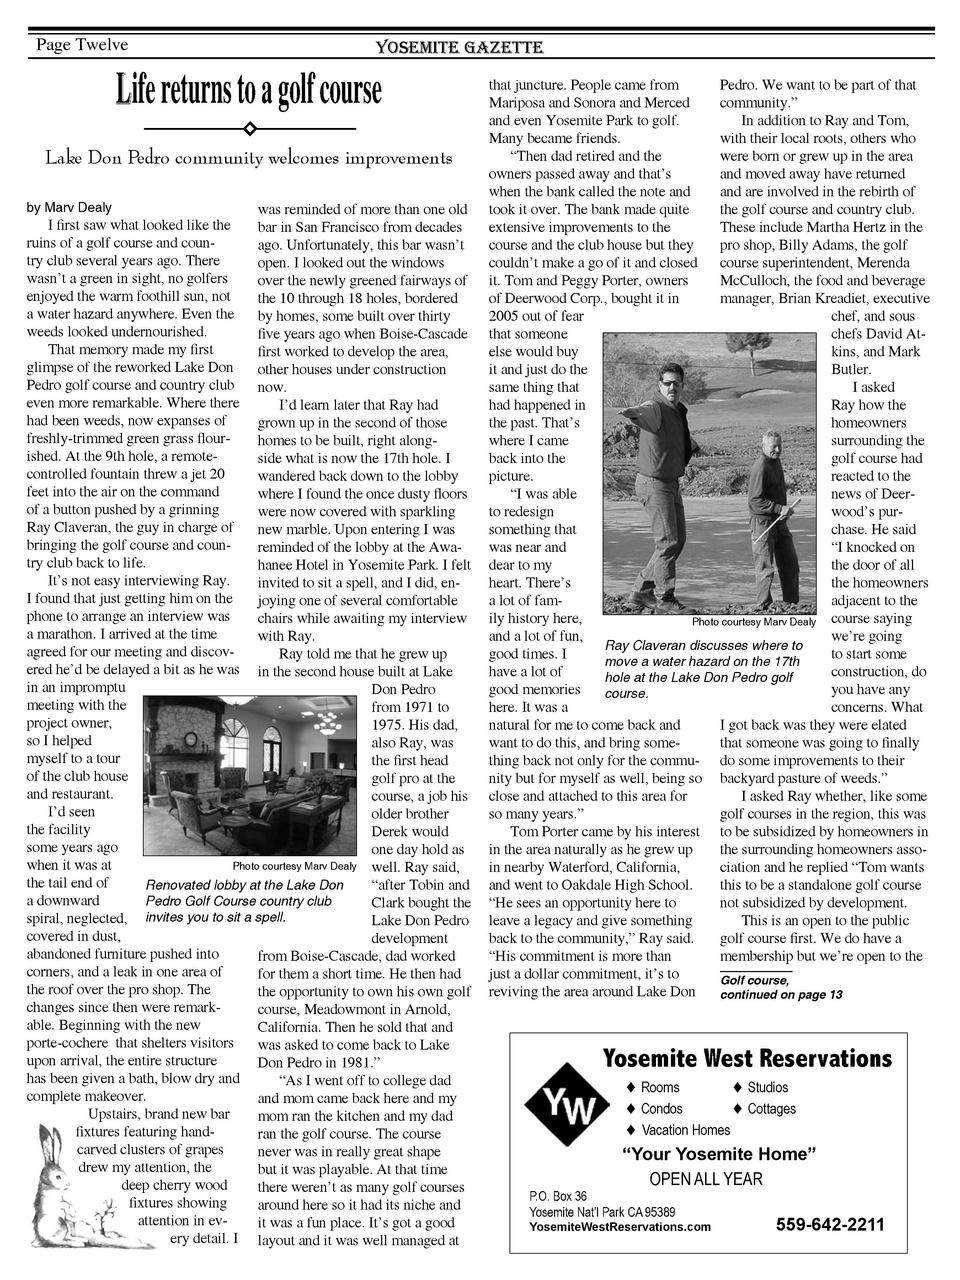 Page Twelve  Yosemite Gazette  Life returns to a golf course Lake Don Pedro community welcomes improvements by Marv Dealy ...